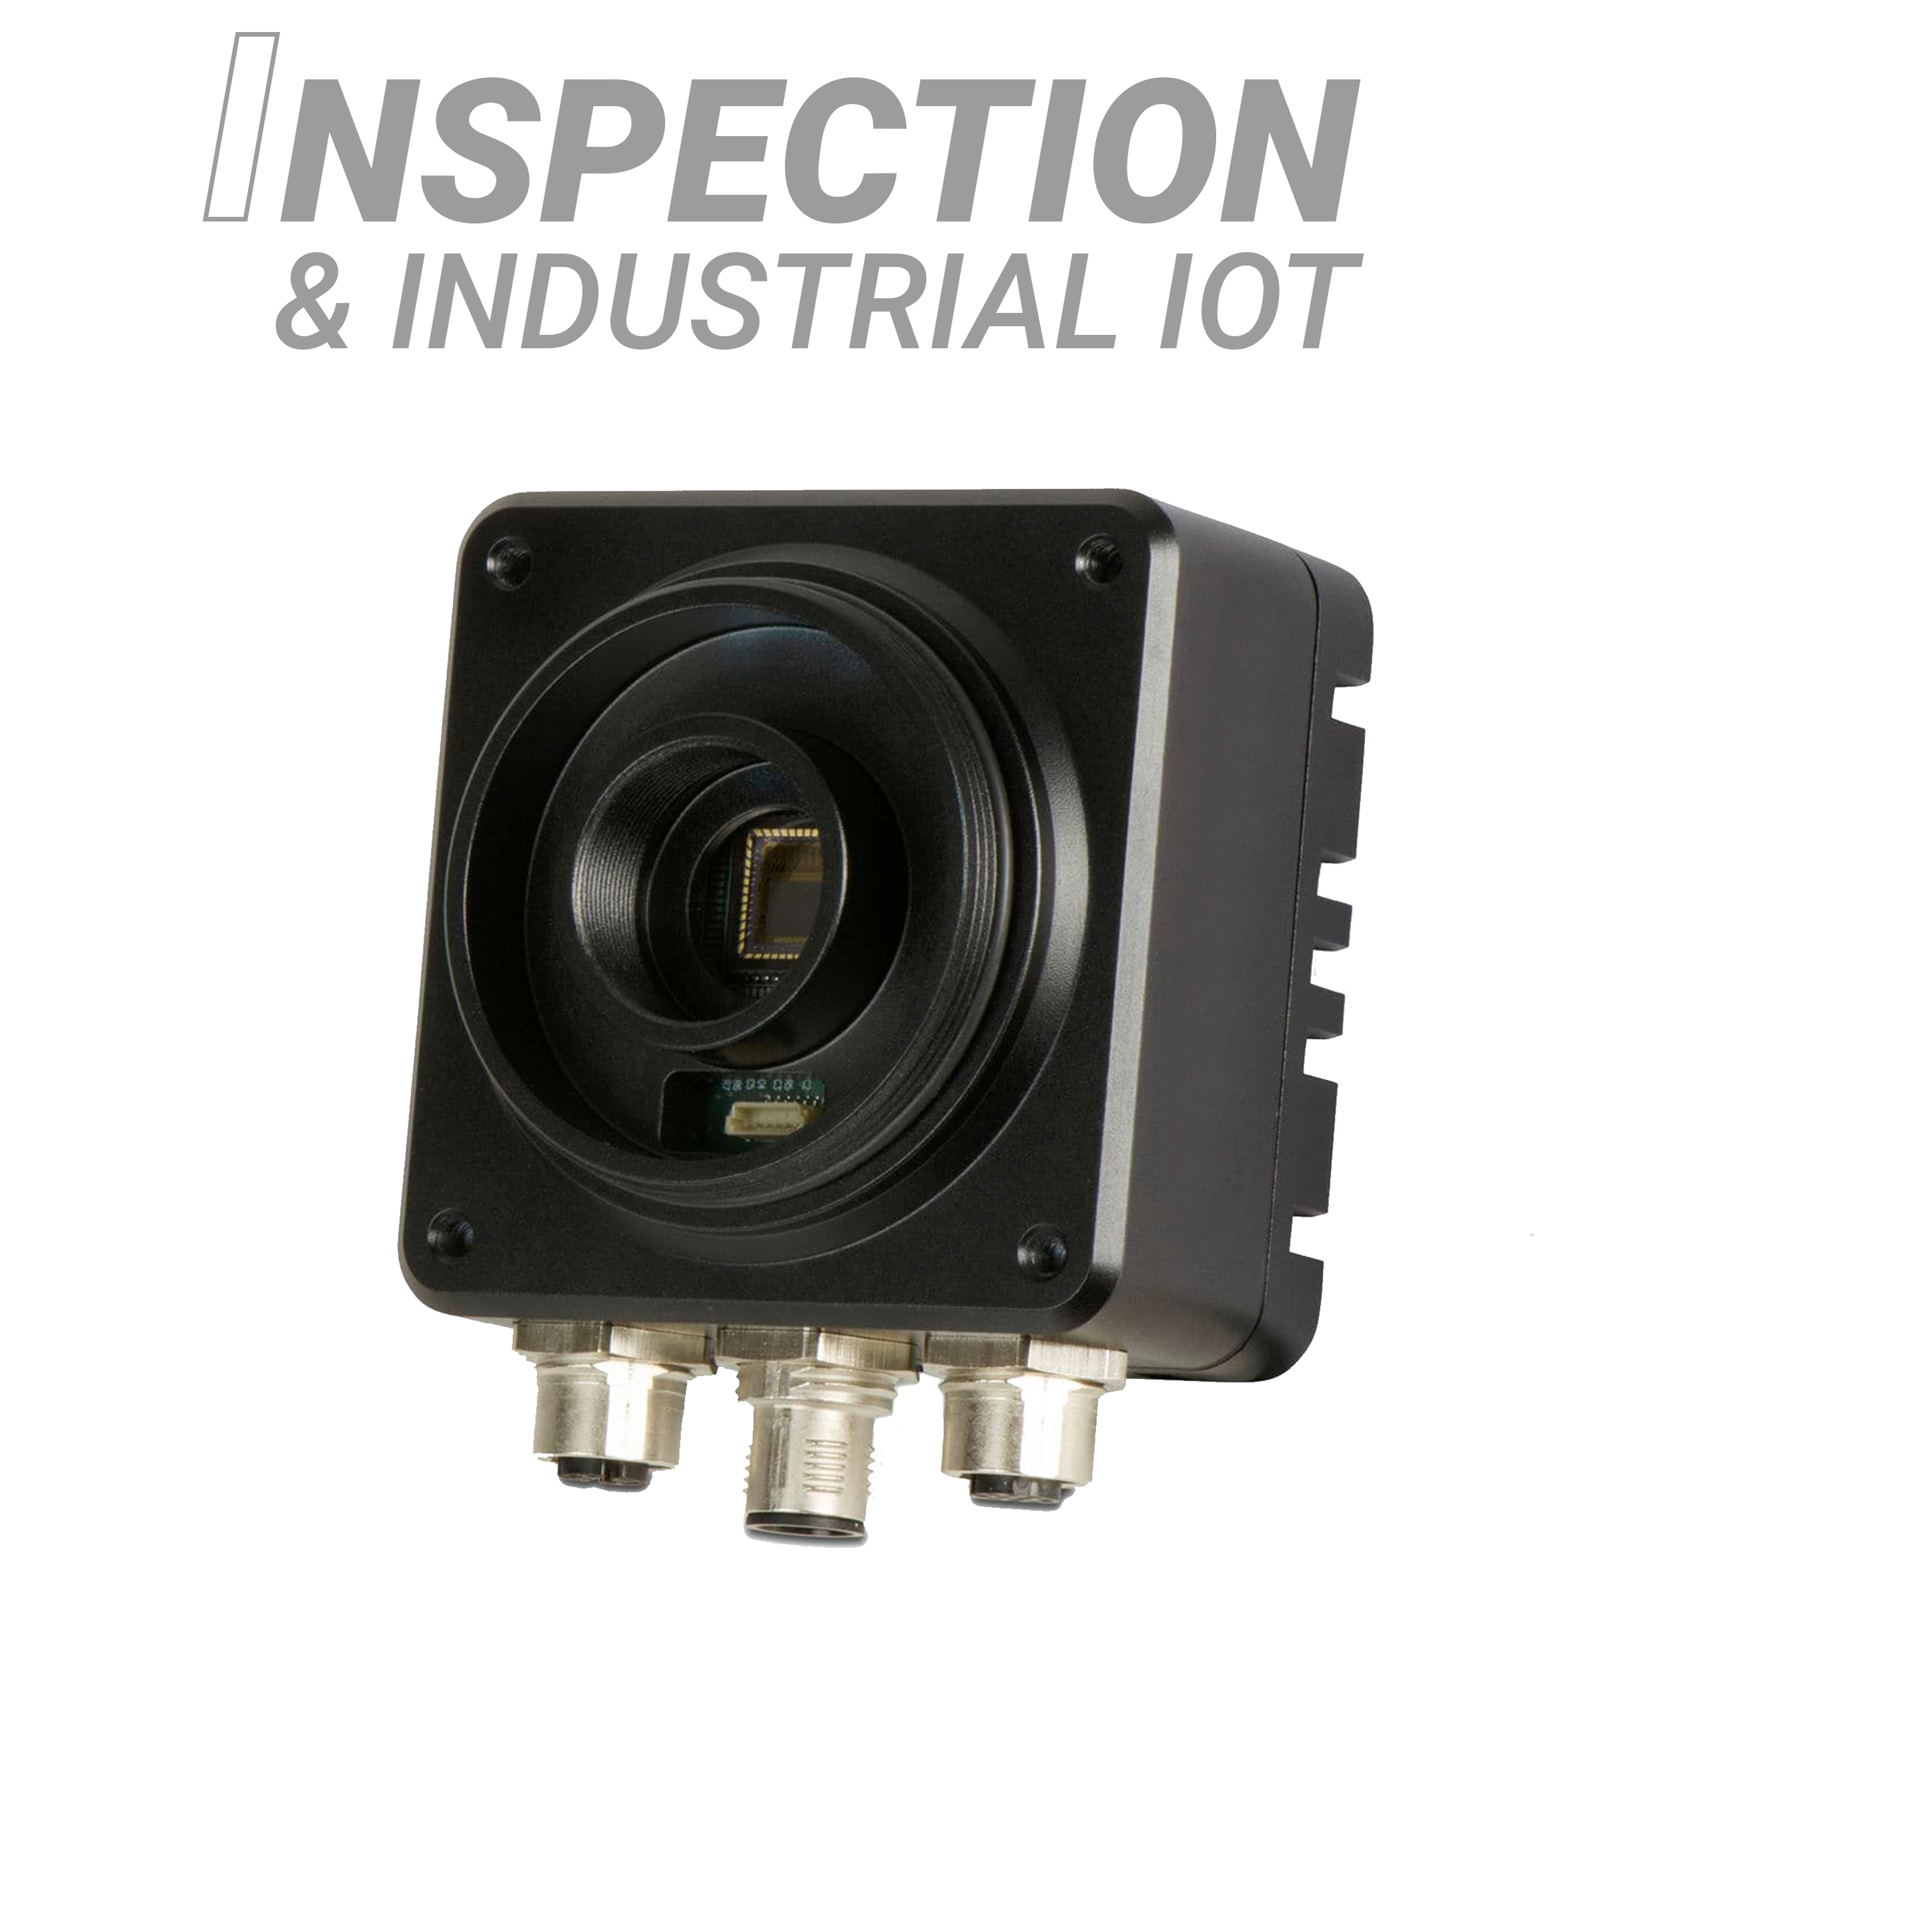 inspection & industrial